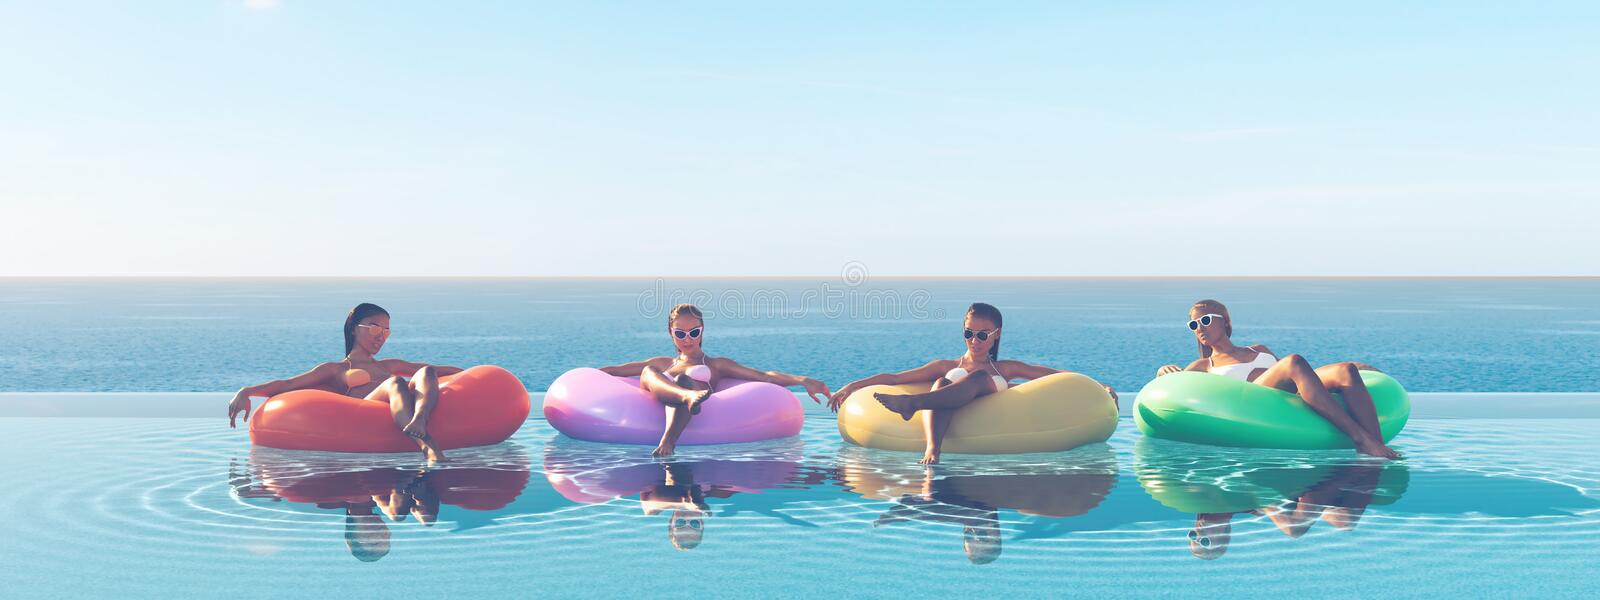 3D-Illustration of women swimming on float in a pool. vector illustration